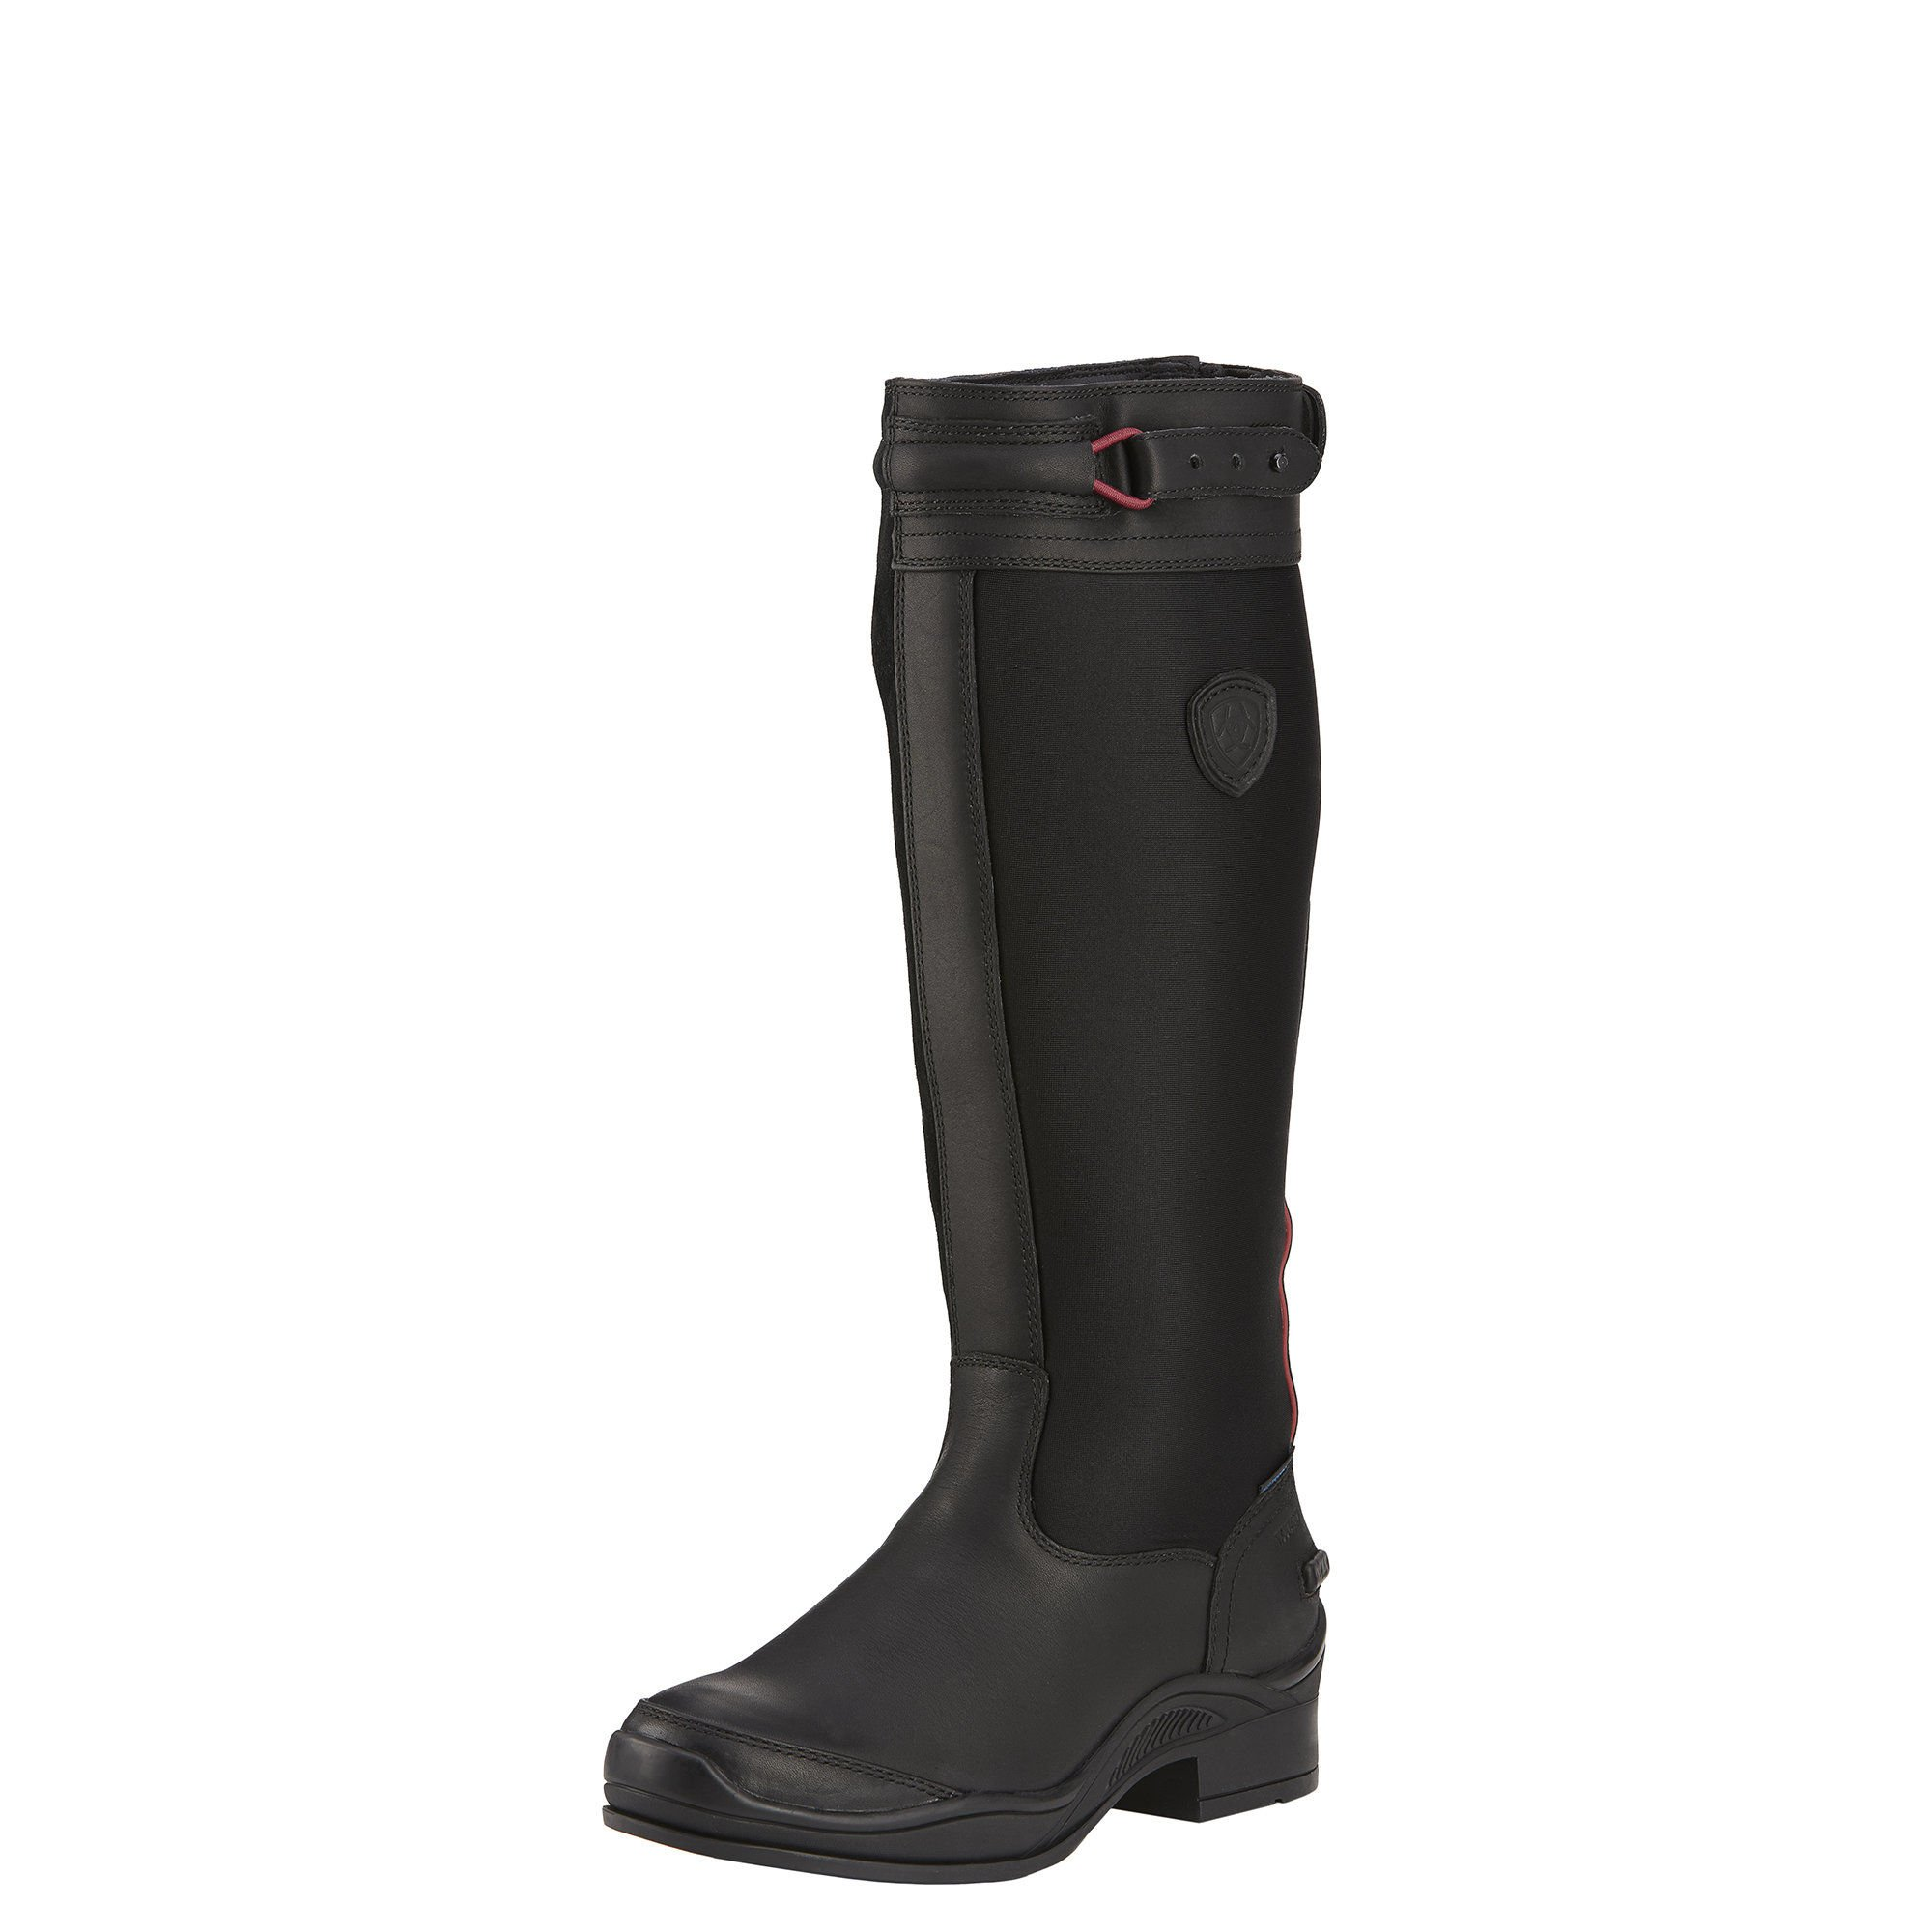 Ariat Womens Extreme Tall H2O Insulated Winter Riding 9 B / Medium(Calf Width) Black